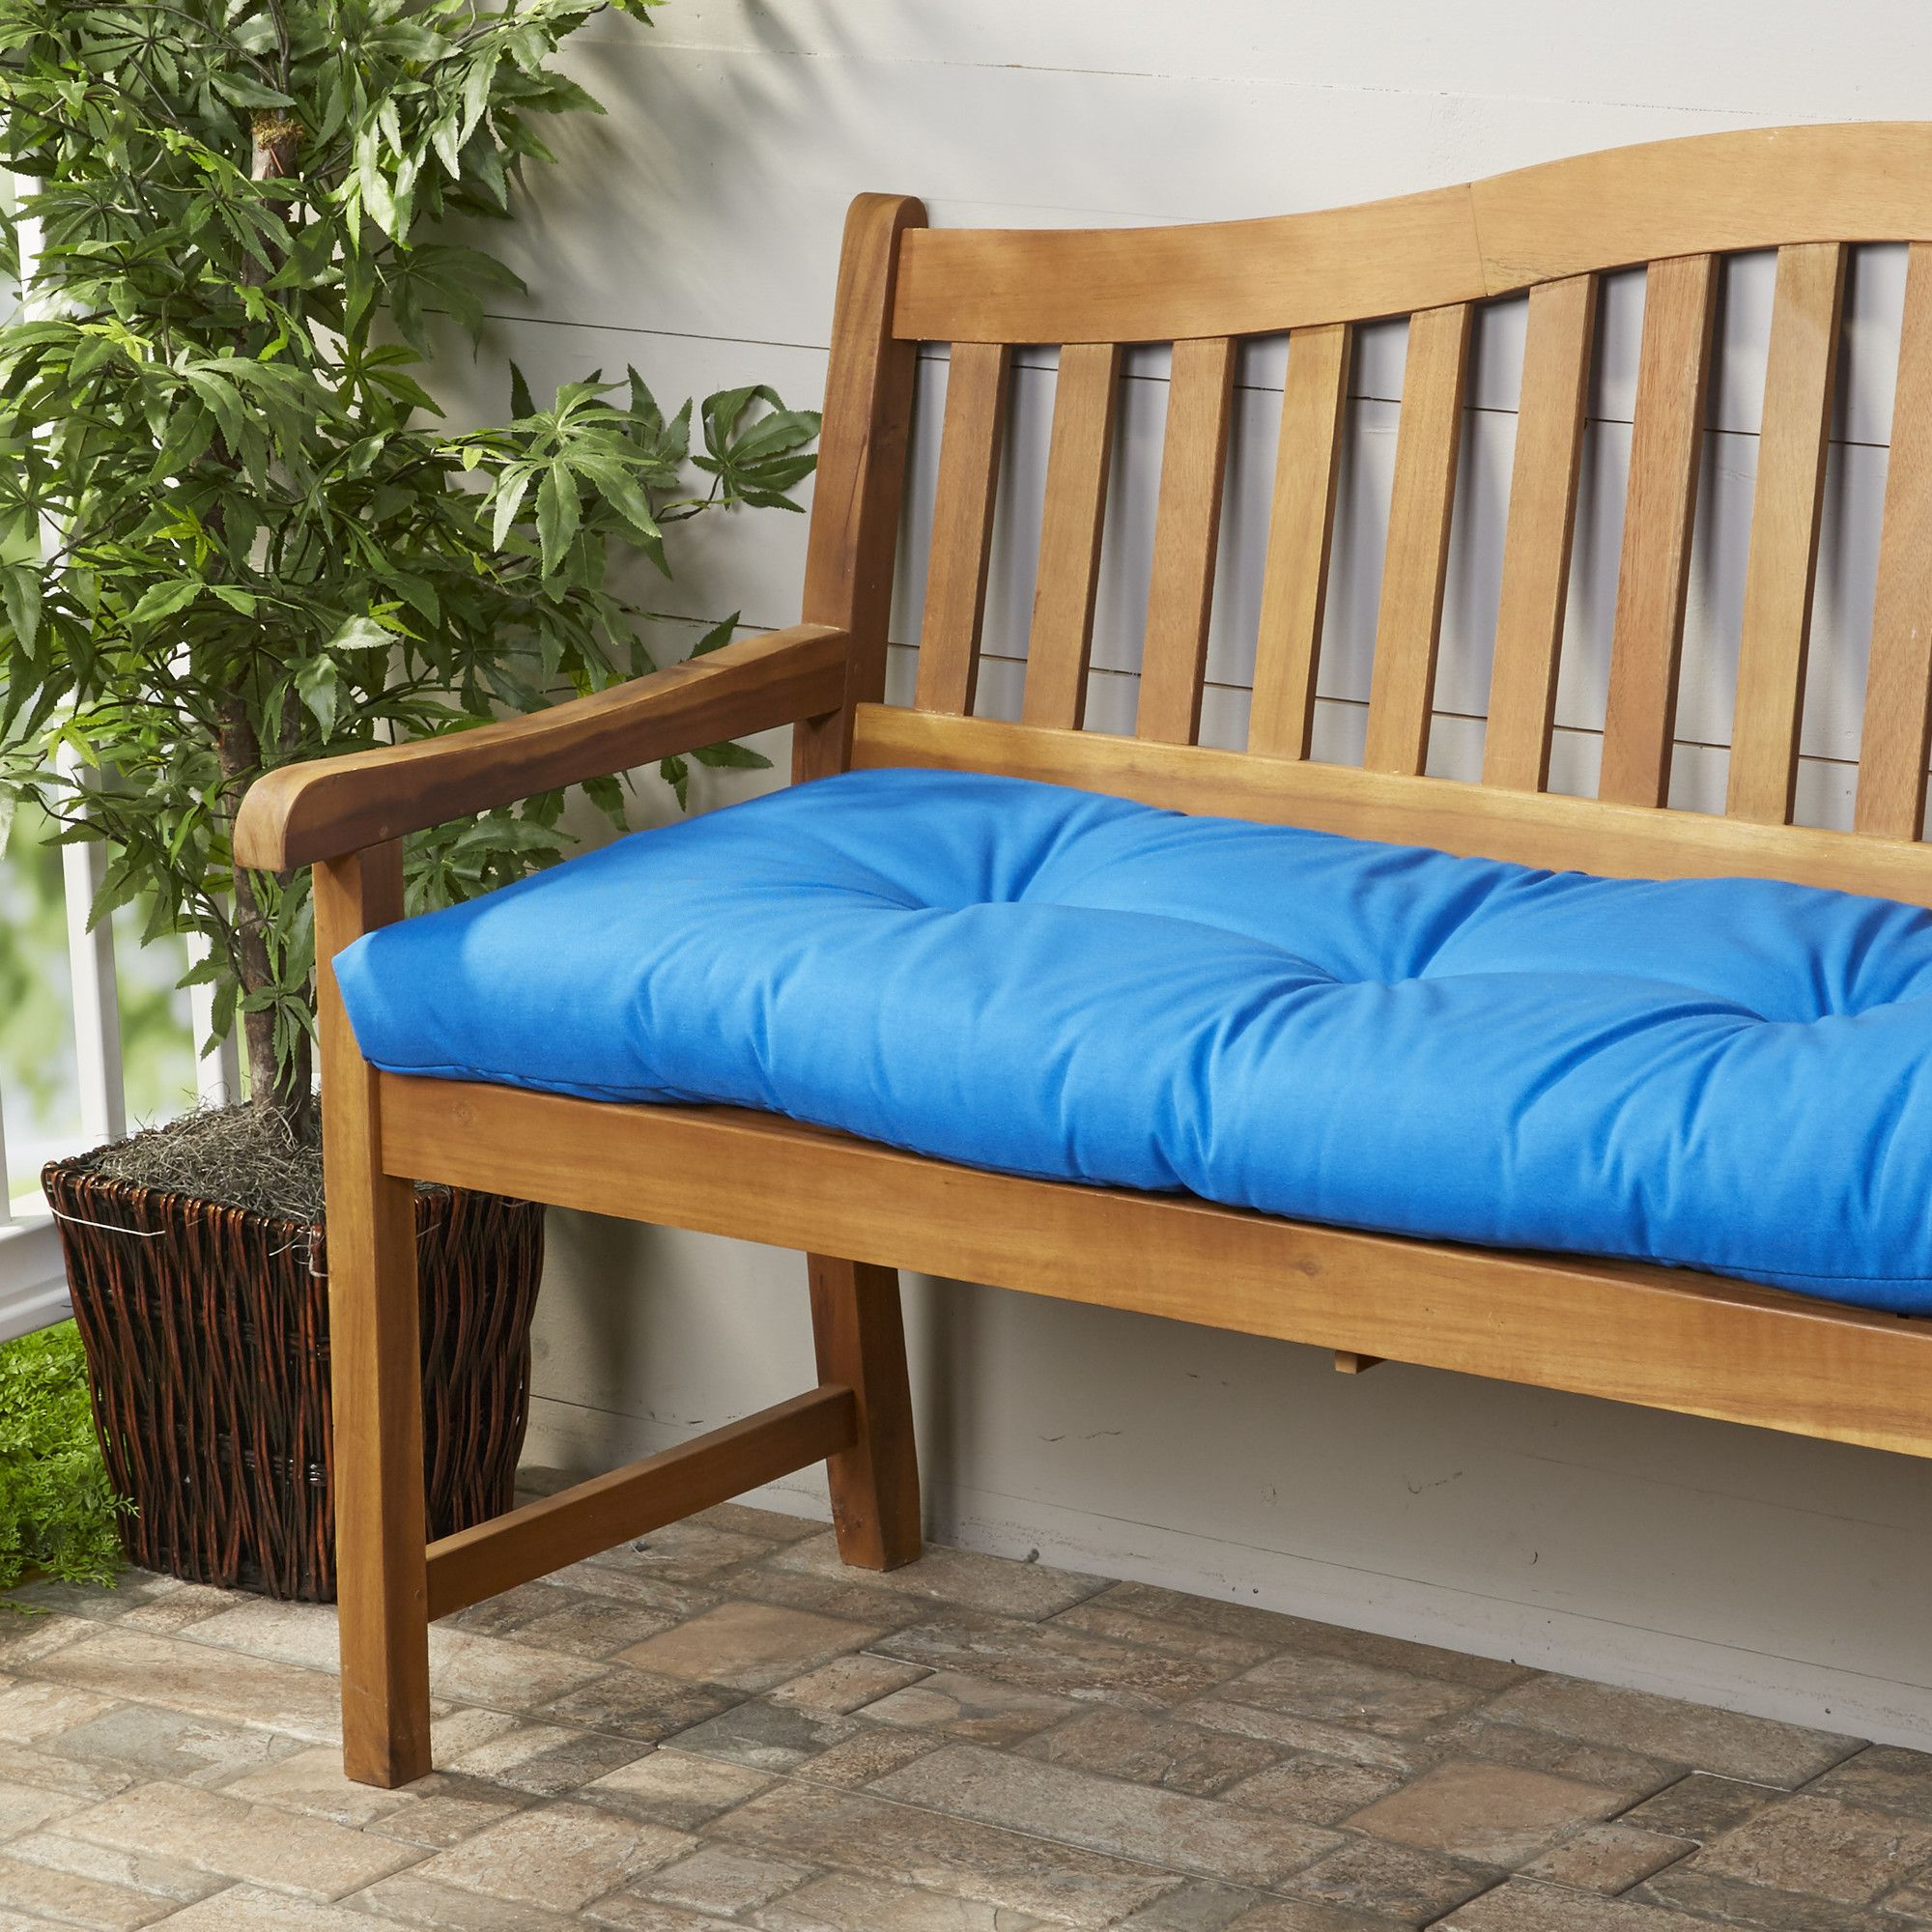 Outdoor Bench Cushion Outdoor Chaise Lounge Cushions Bench Cushions Outdoor Chair Cushions